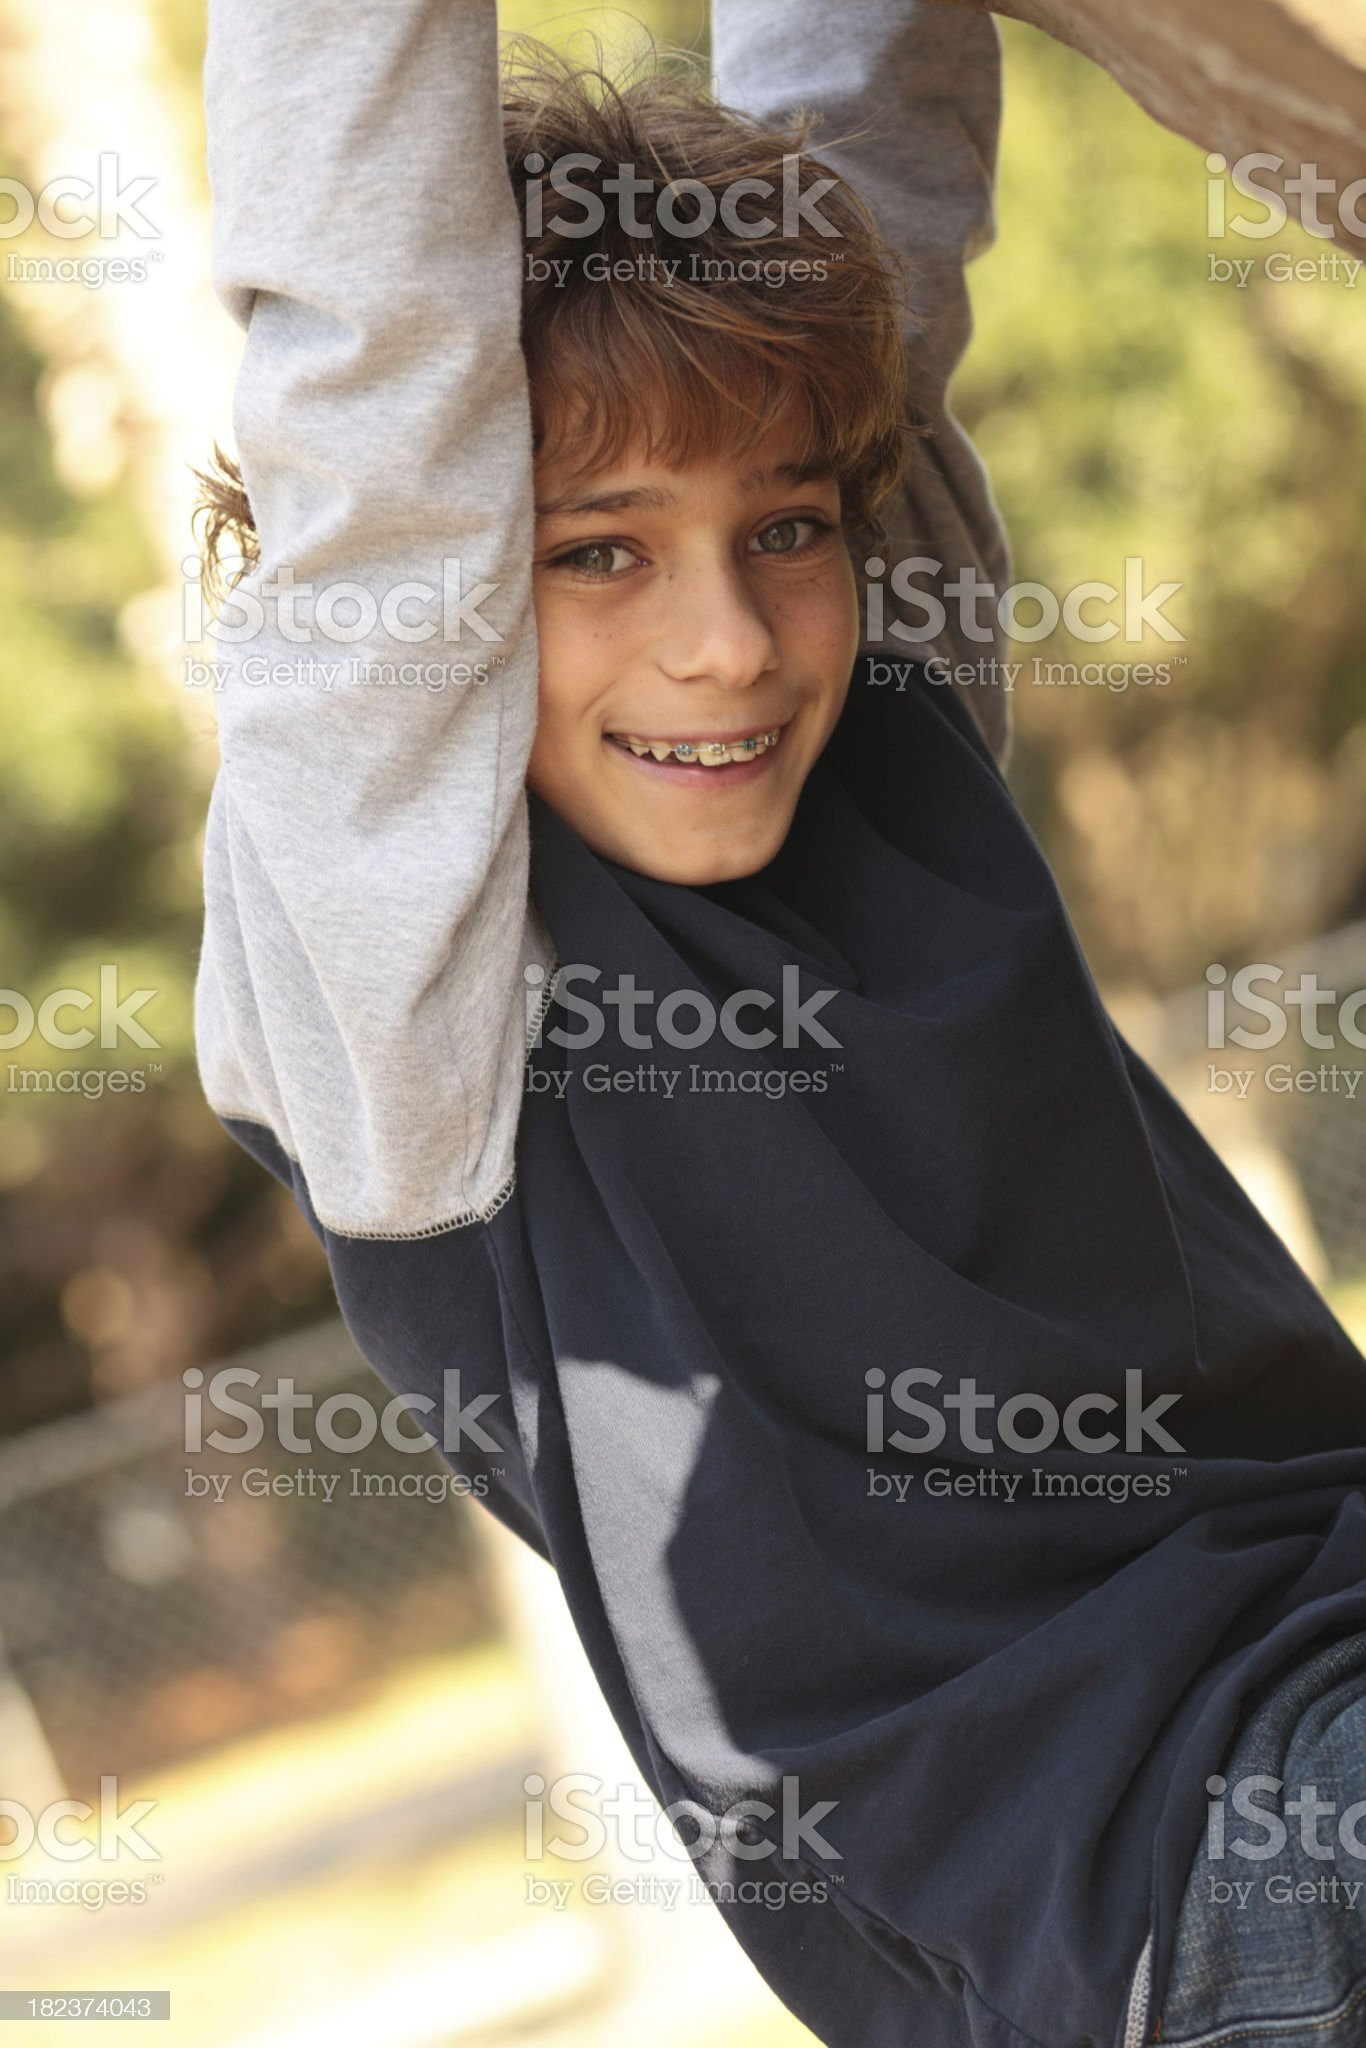 Young boy smiling royalty-free stock photo